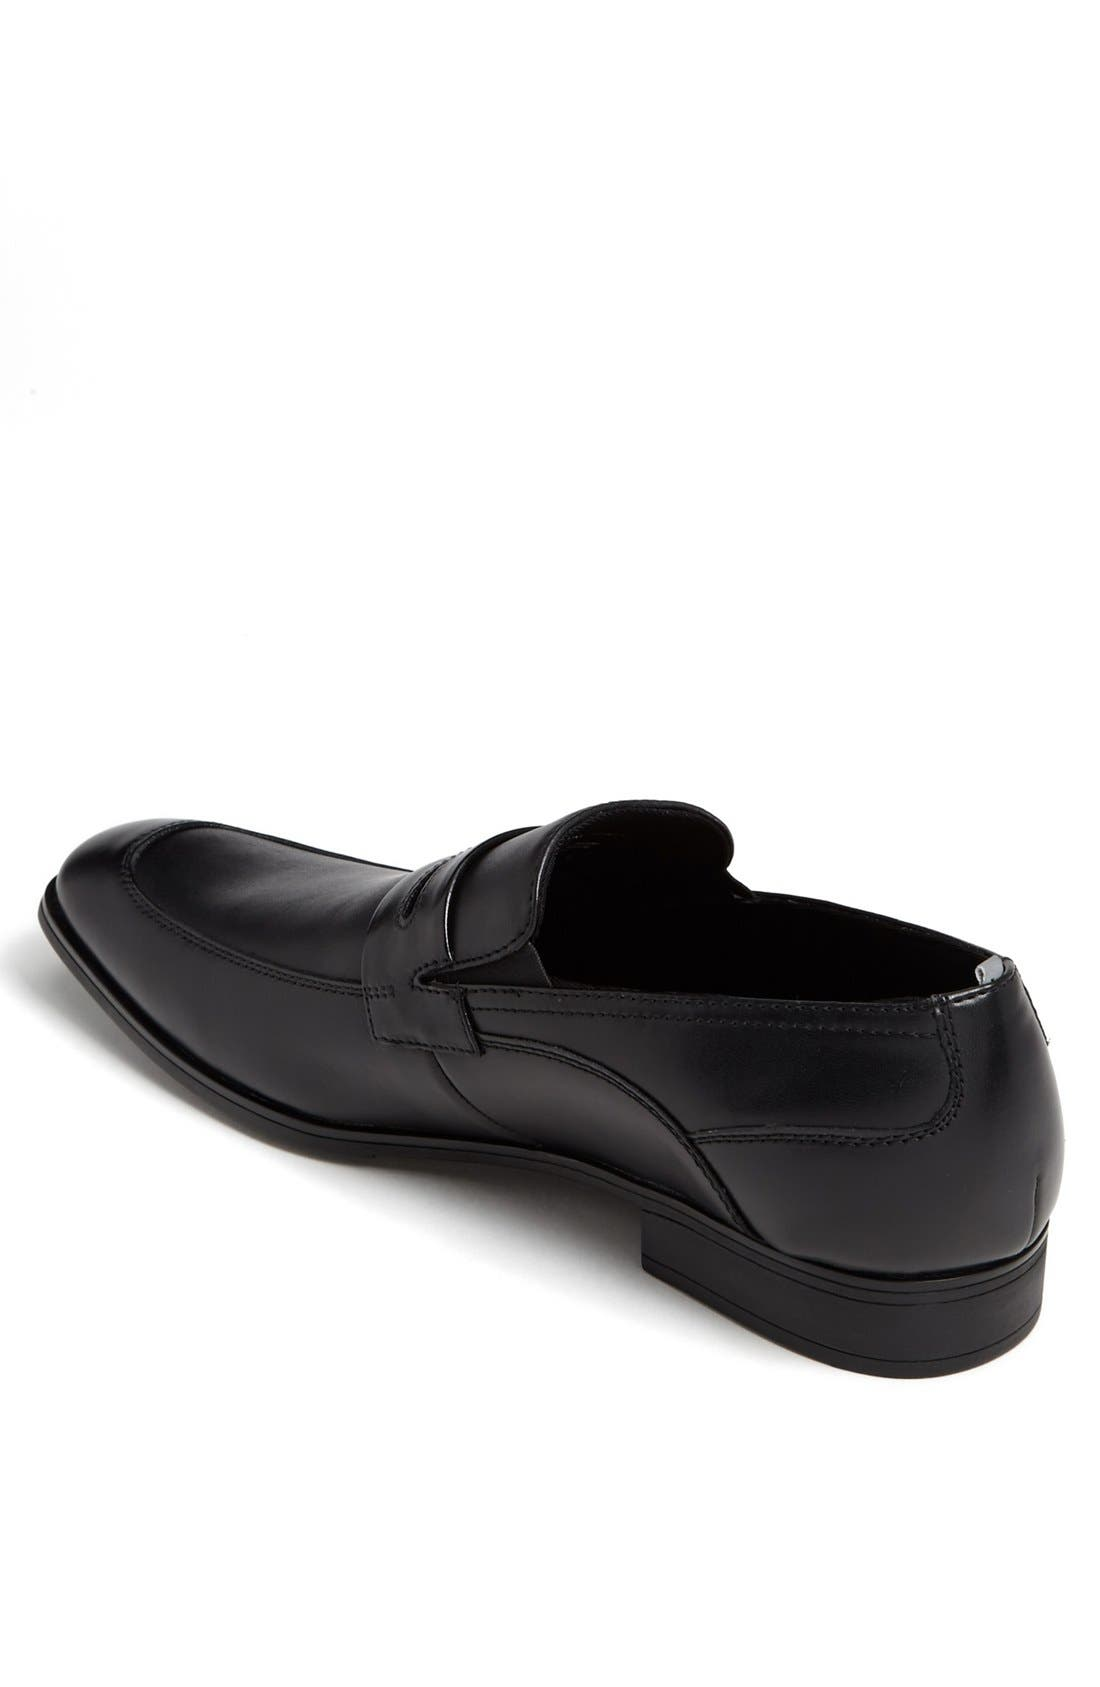 Alternate Image 2  - Kenneth Cole Reaction 'Ghost Town' Penny Loafer